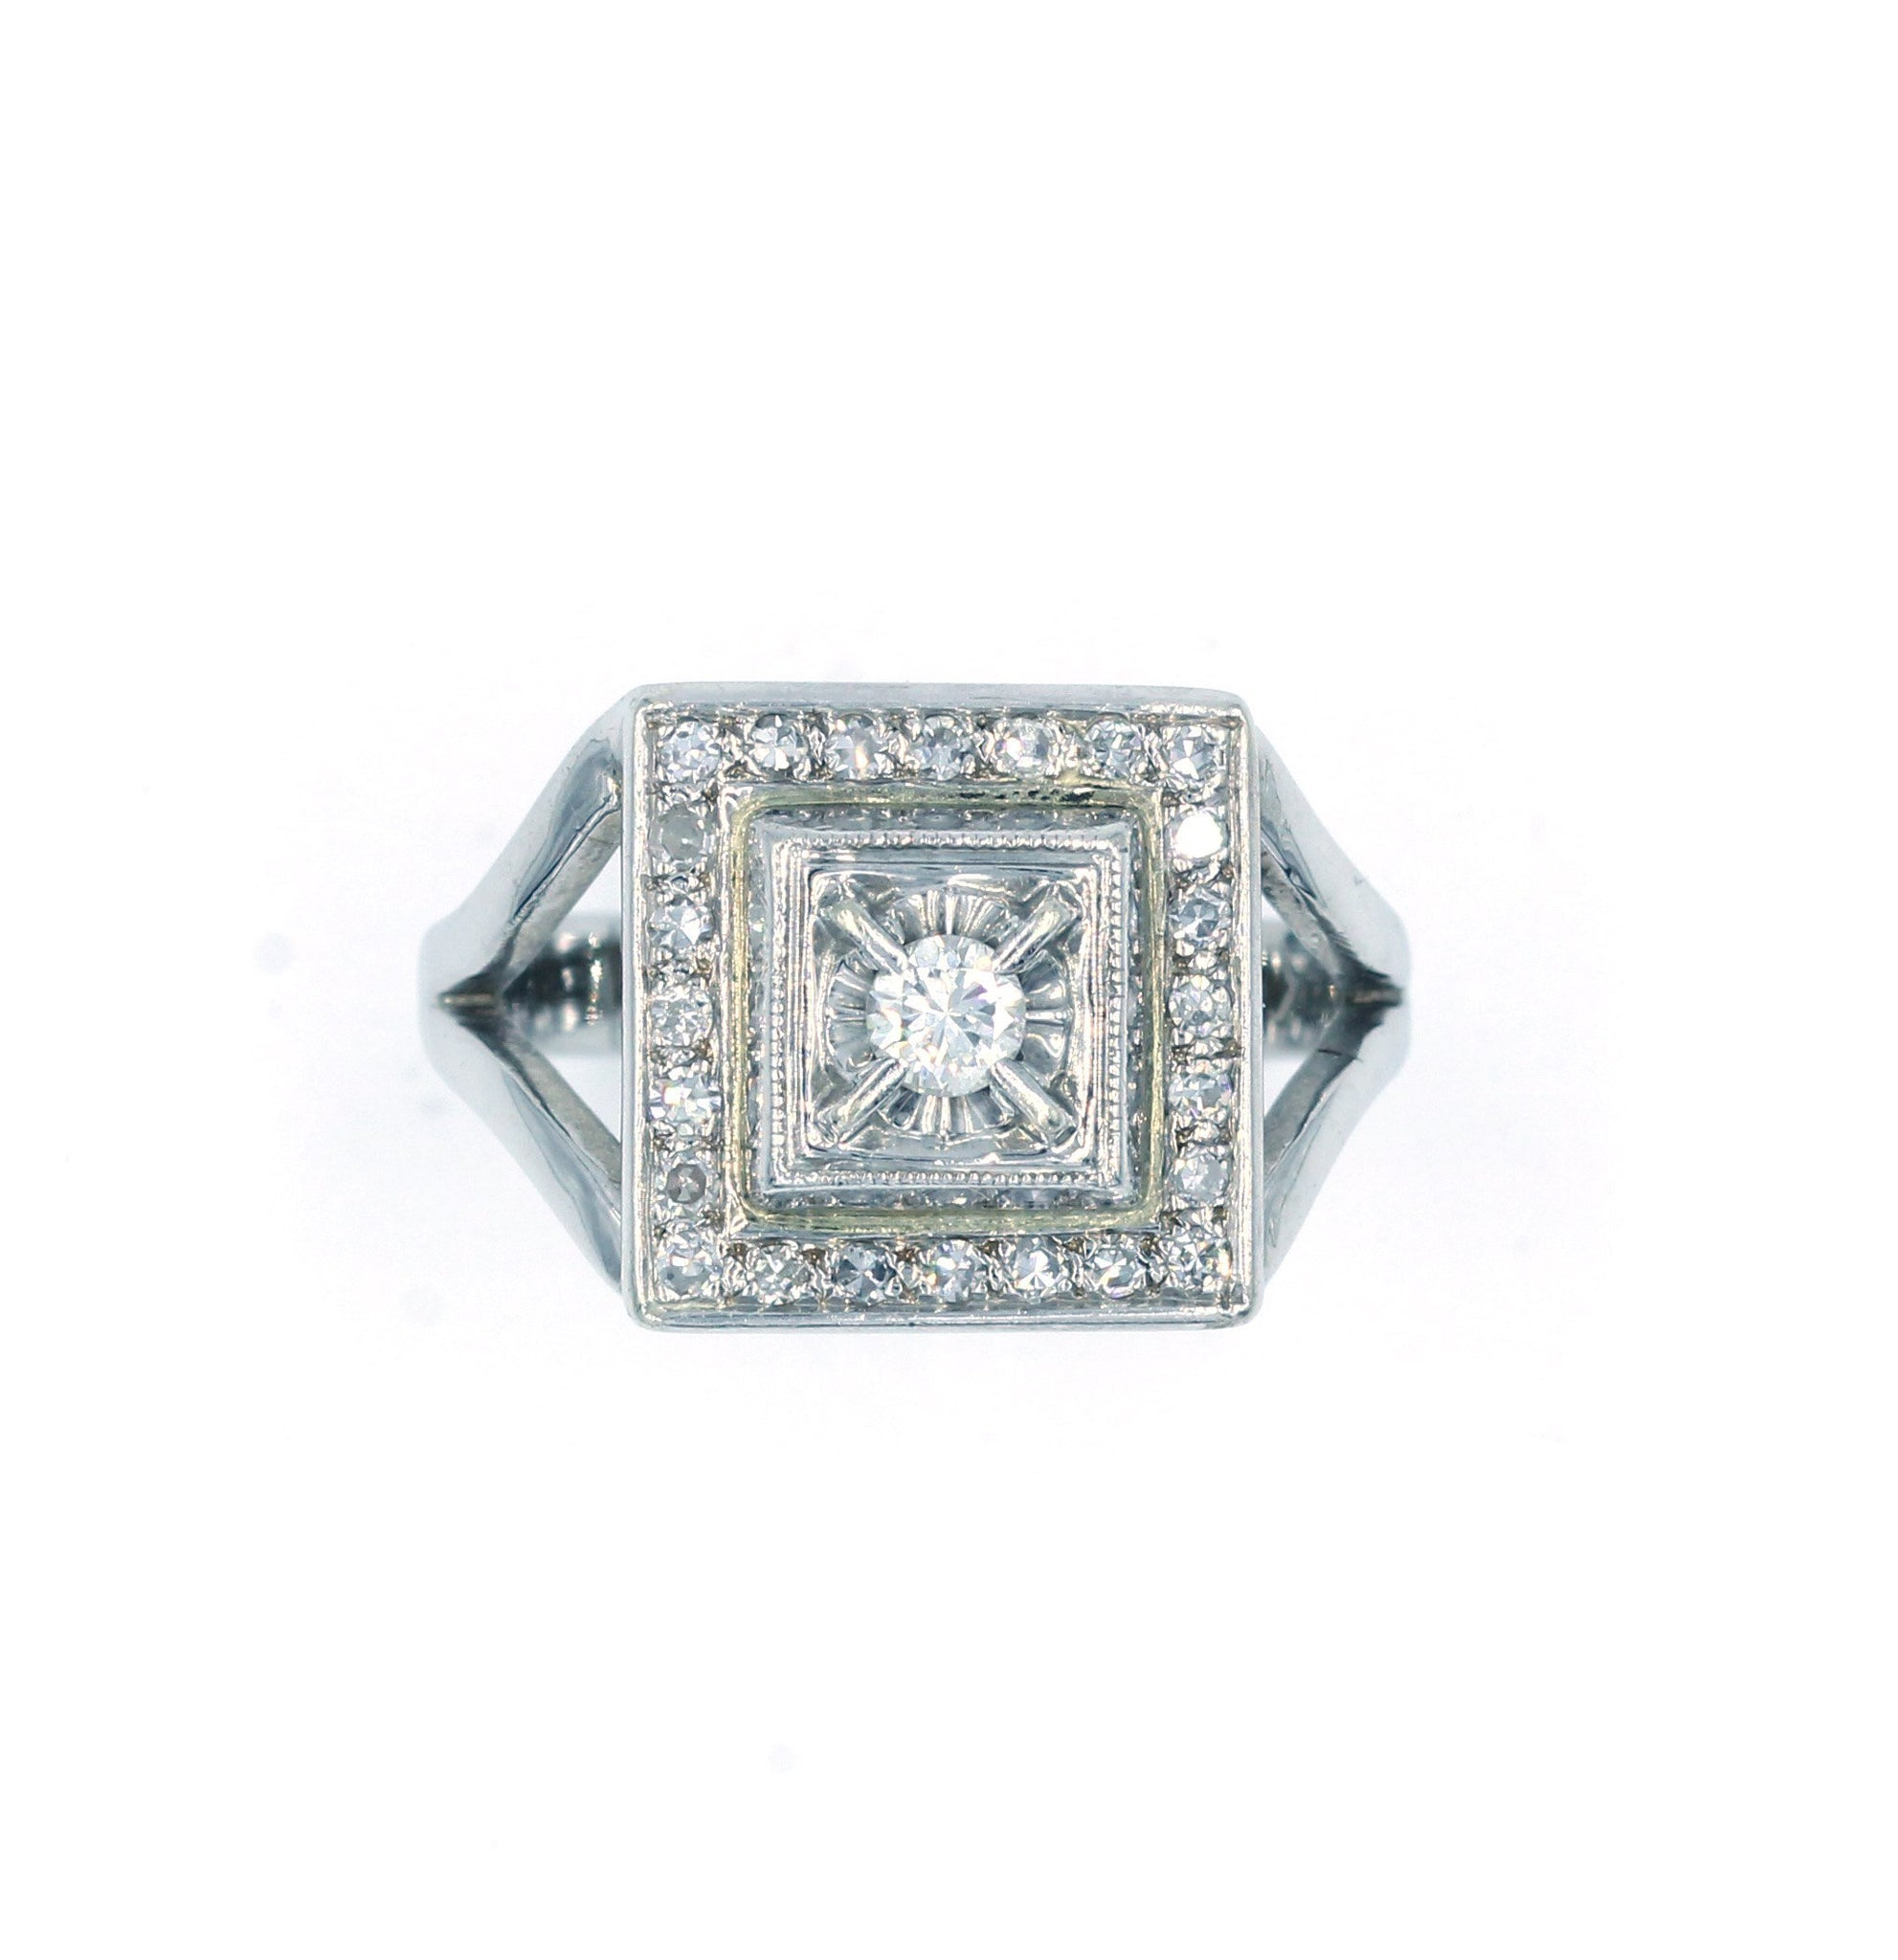 Vintage Diamond Ring, SALE, SOLD